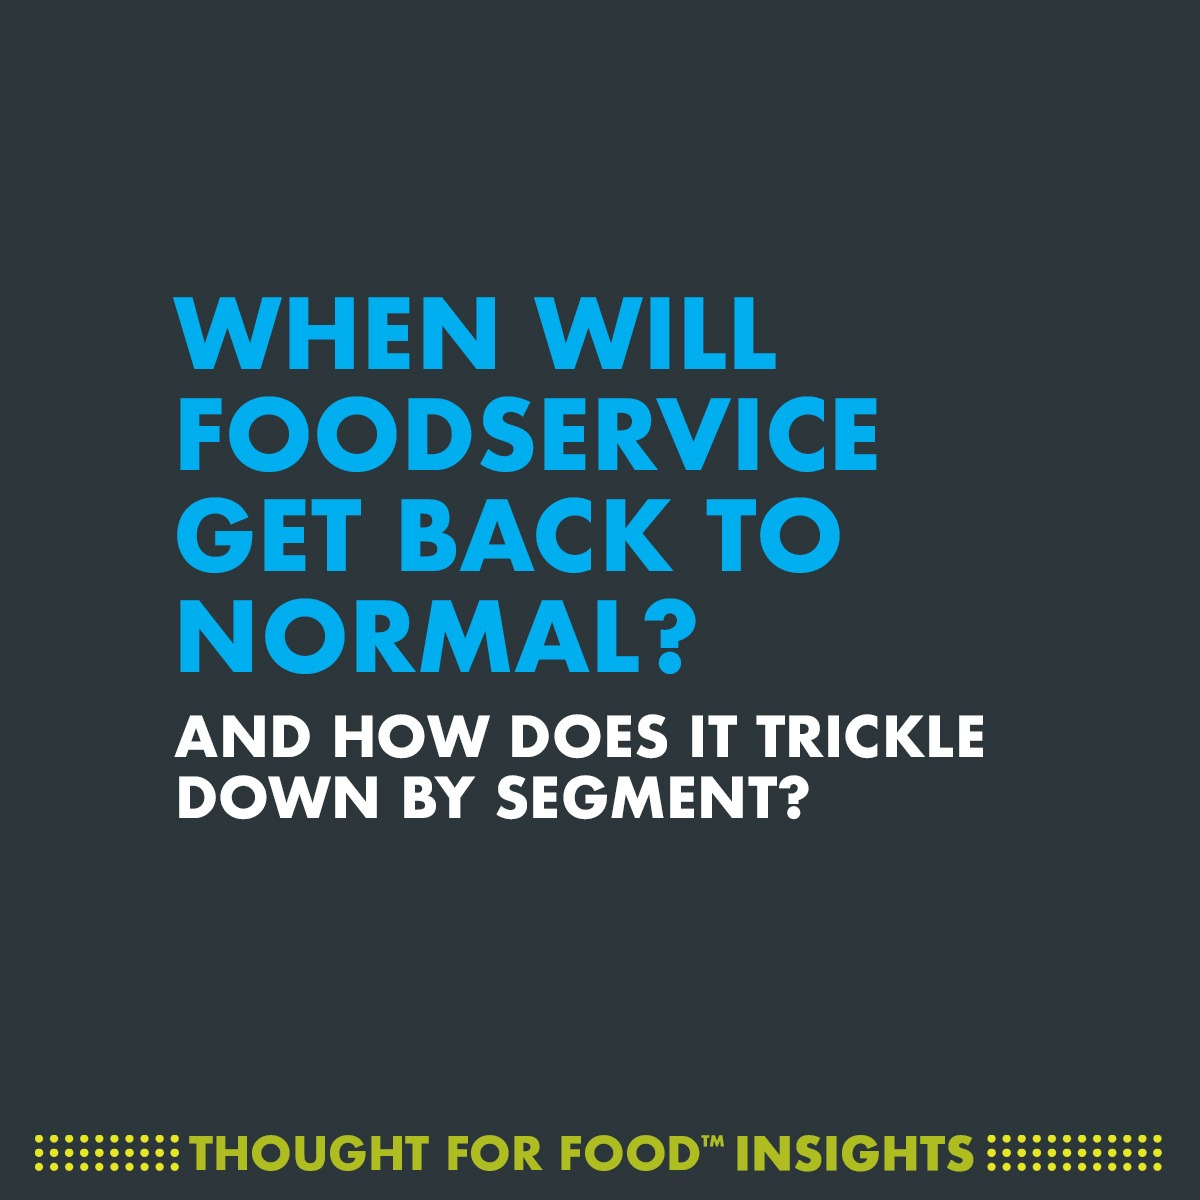 When will foodservice get back to normal?